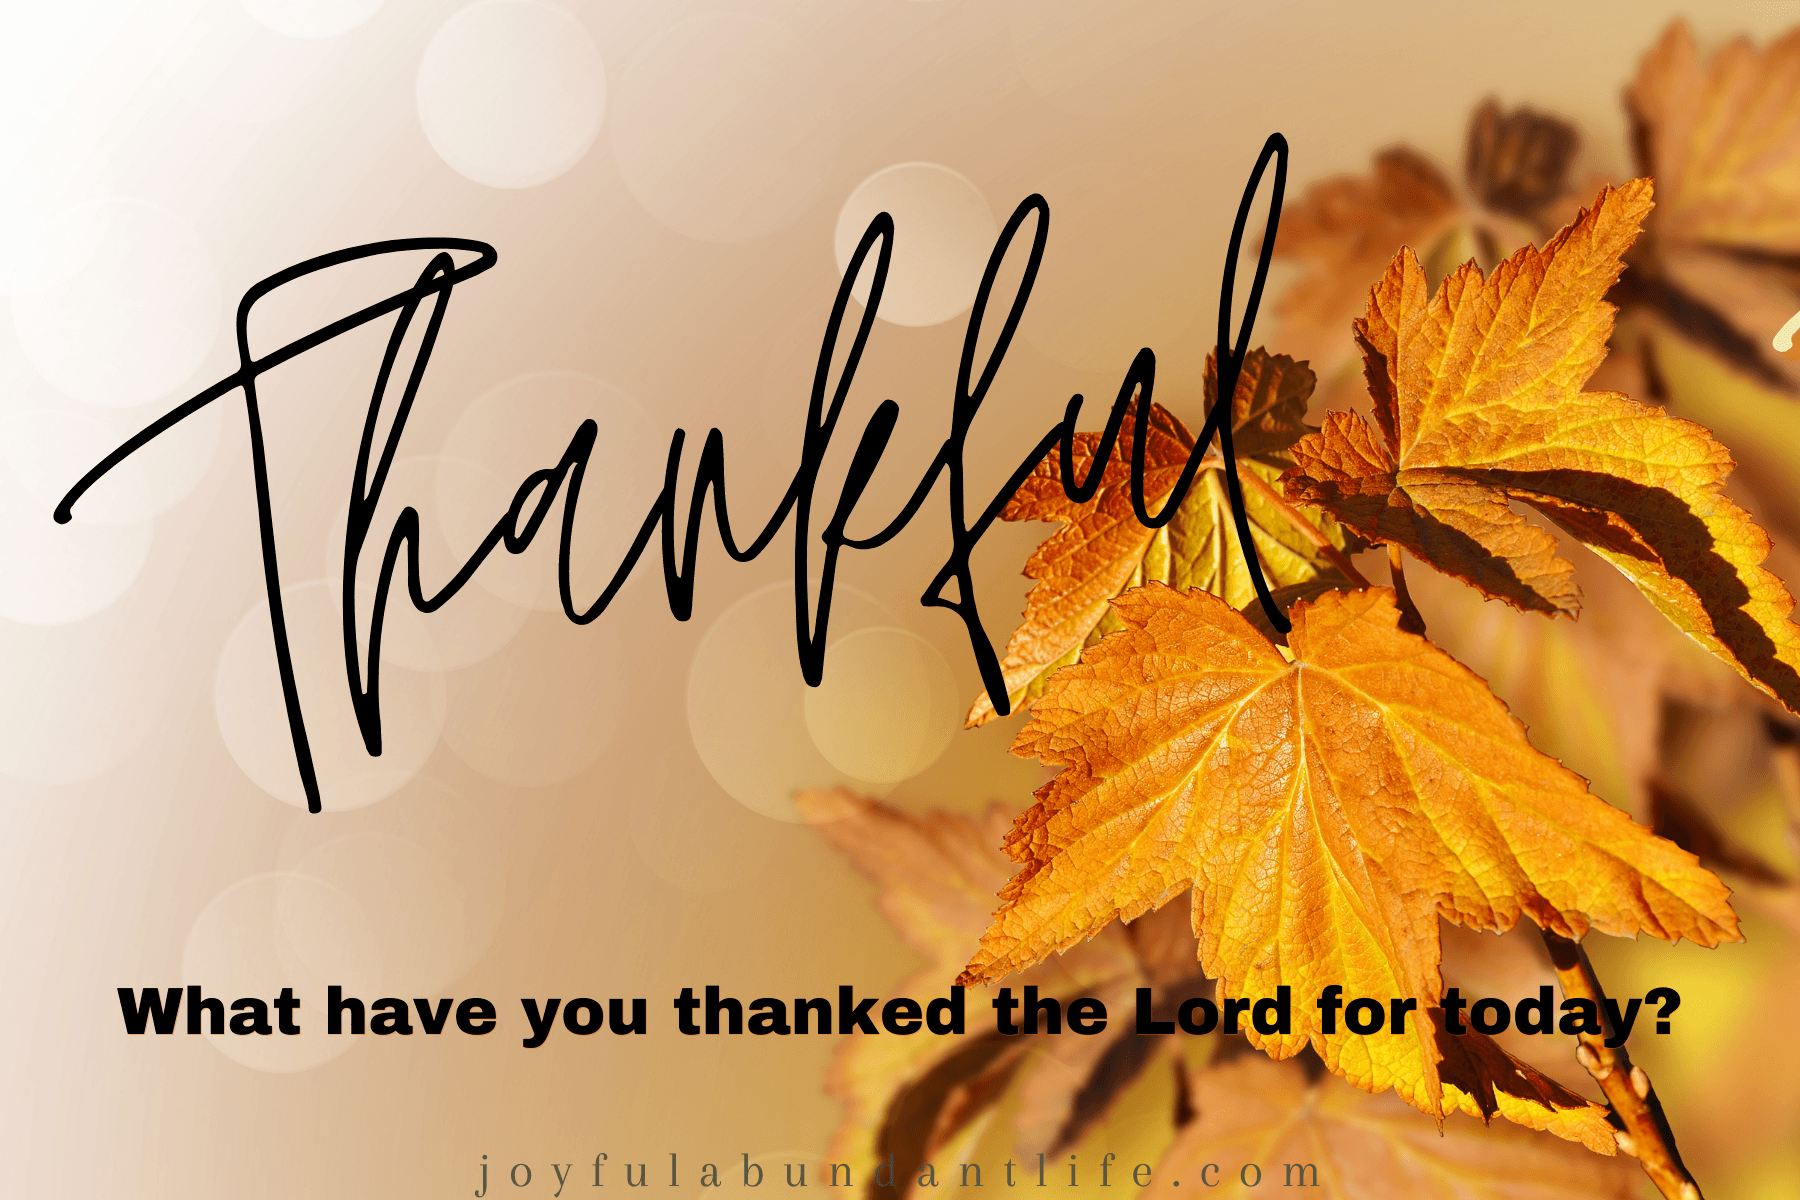 Give thanks to God whether in trying times or mundane times